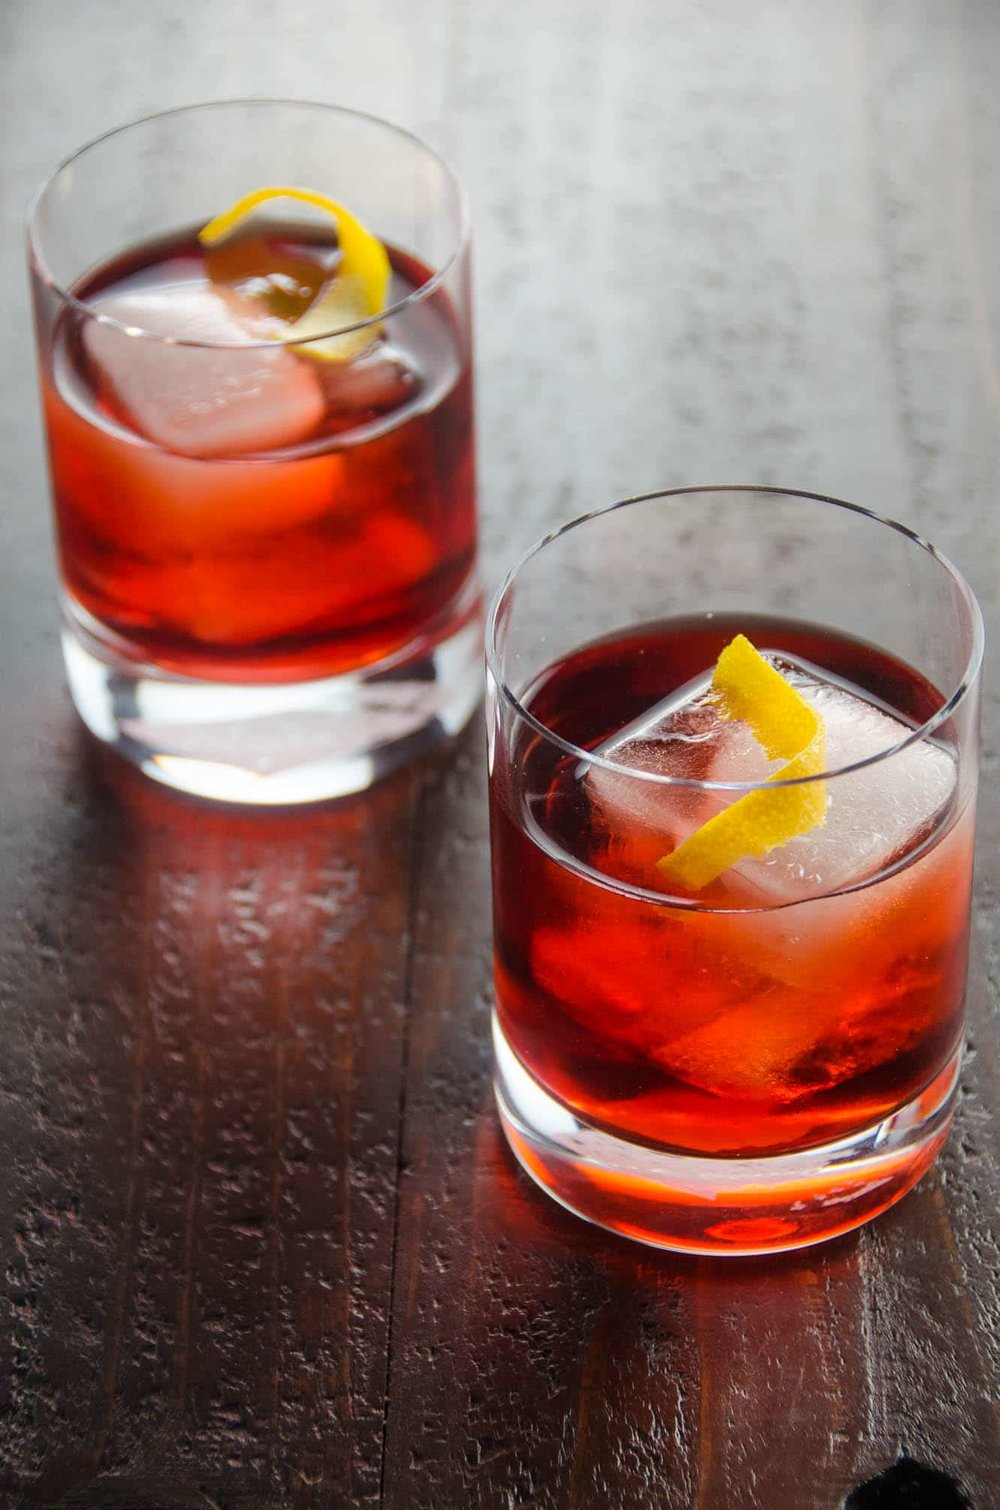 From Italy - a Classic Negroni Cocktail (recipe from Umami Girl) -